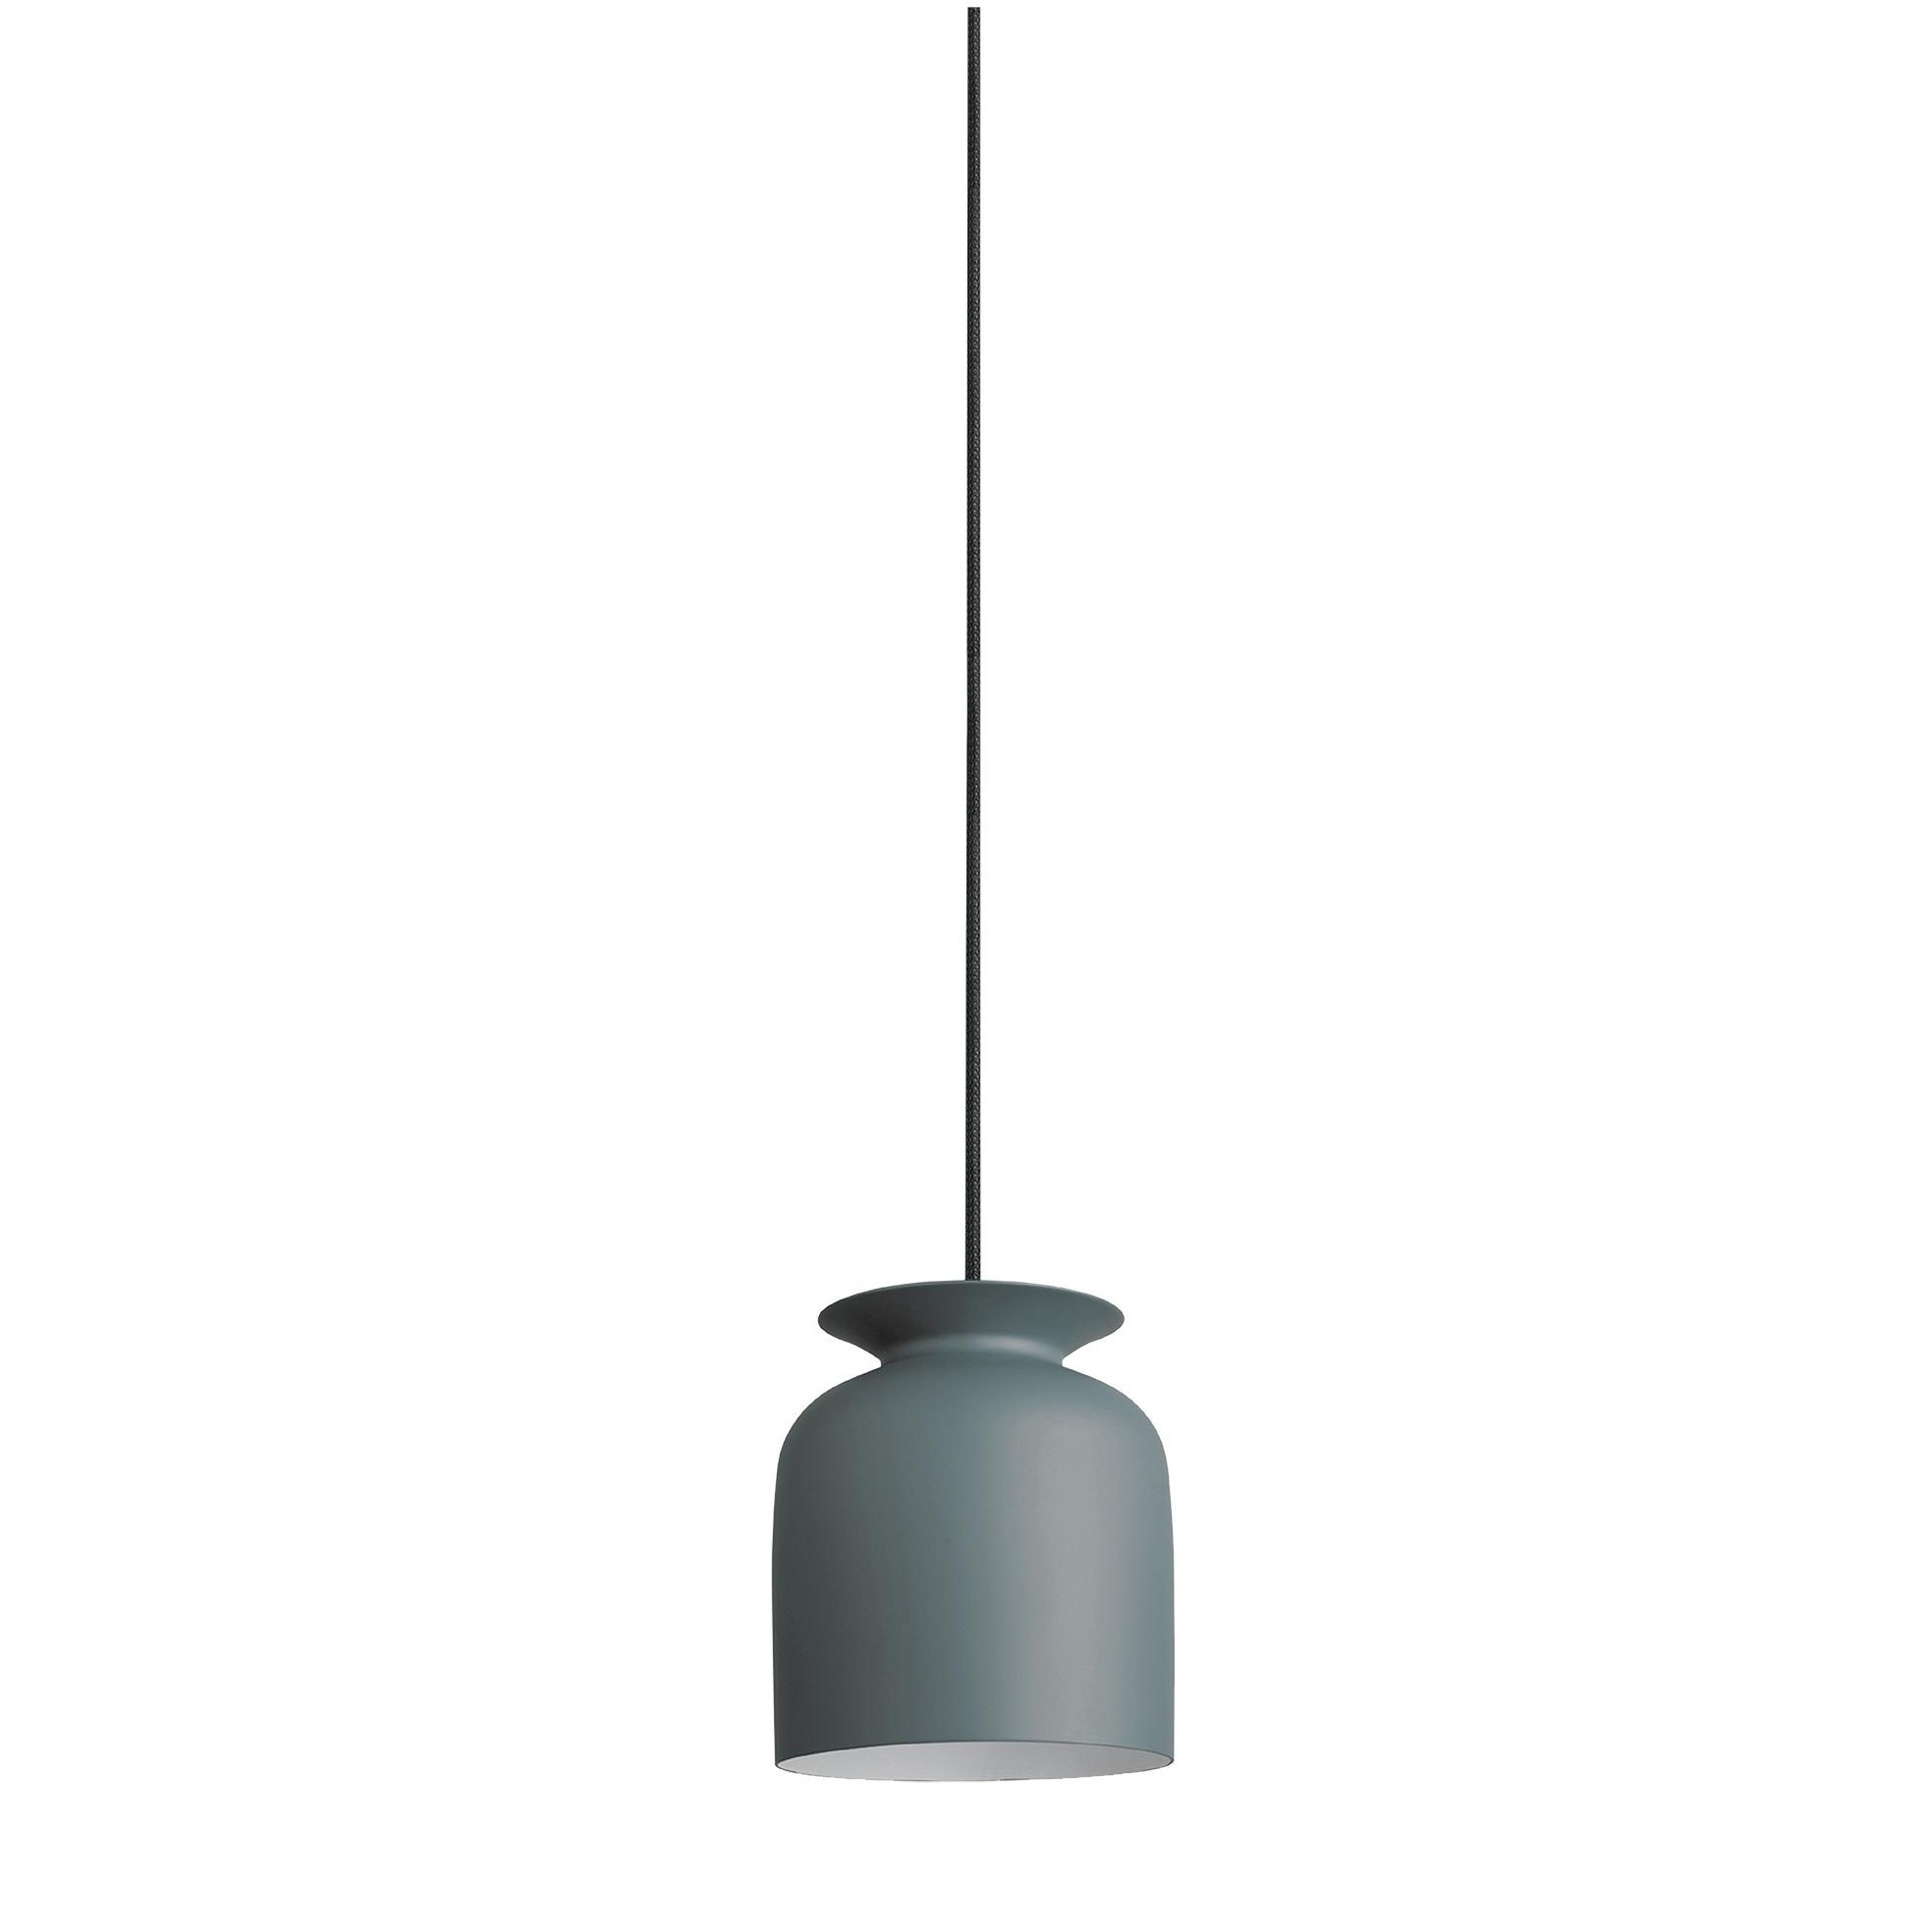 Suspension Ronde Ronde S Suspension Lamp